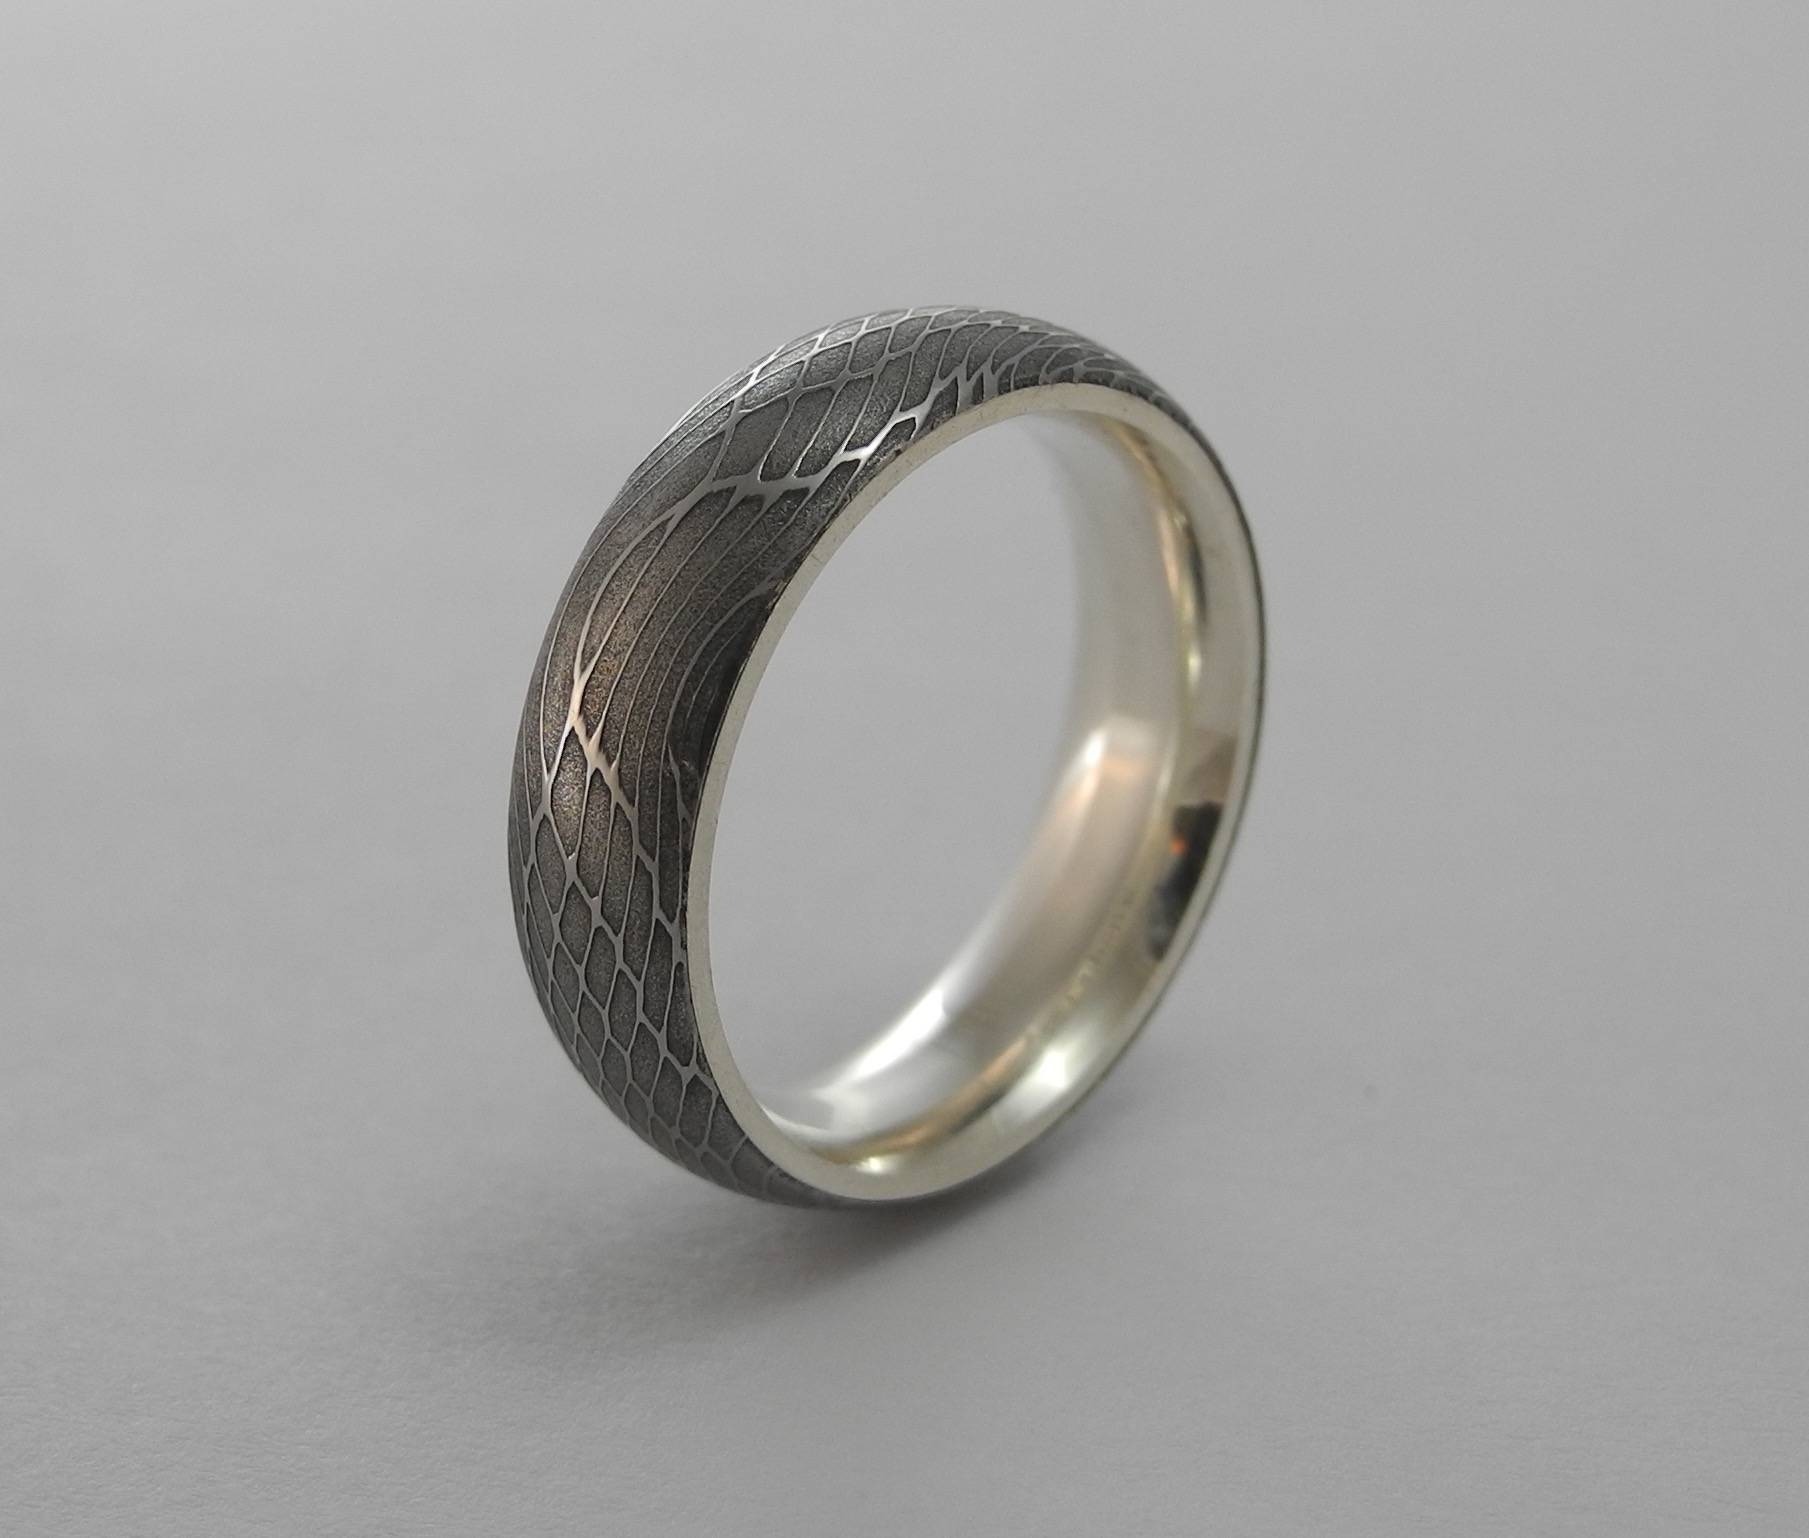 Jewelry Company, Carbon 6, Introduces Silver And Damascus Men's Pertaining To Damascus Steel Men's Wedding Bands (View 6 of 15)